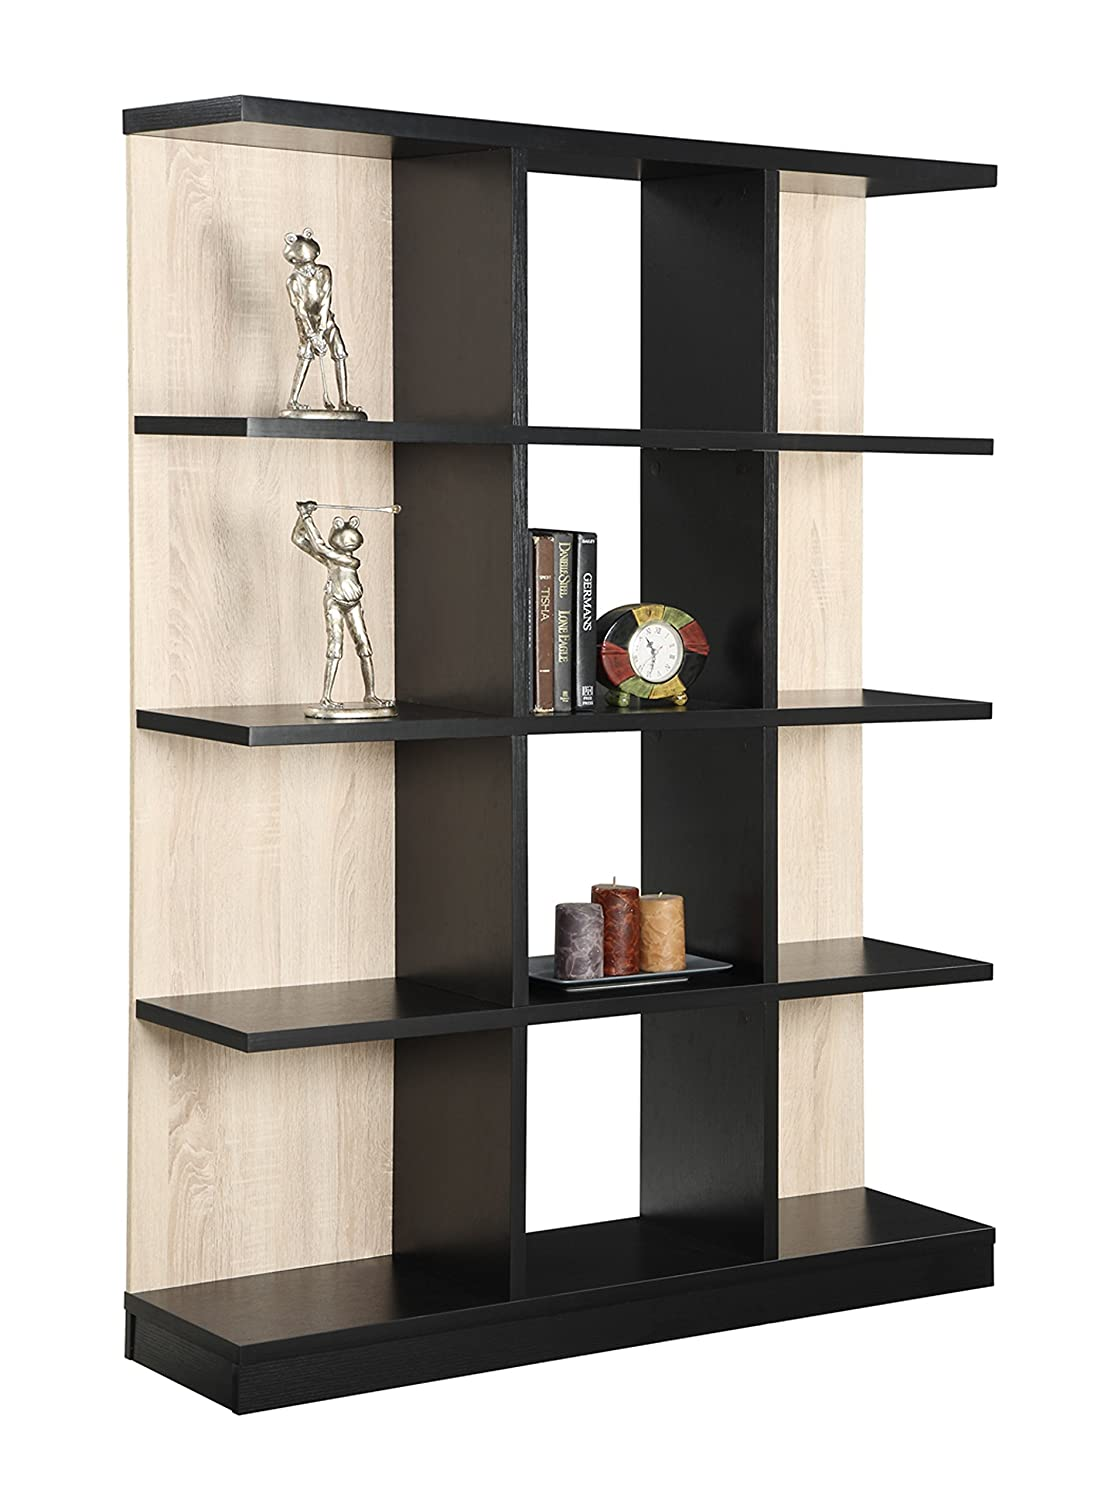 4 Tier Bookcase Shelf Storage Bookshelf Wood Shelving Book